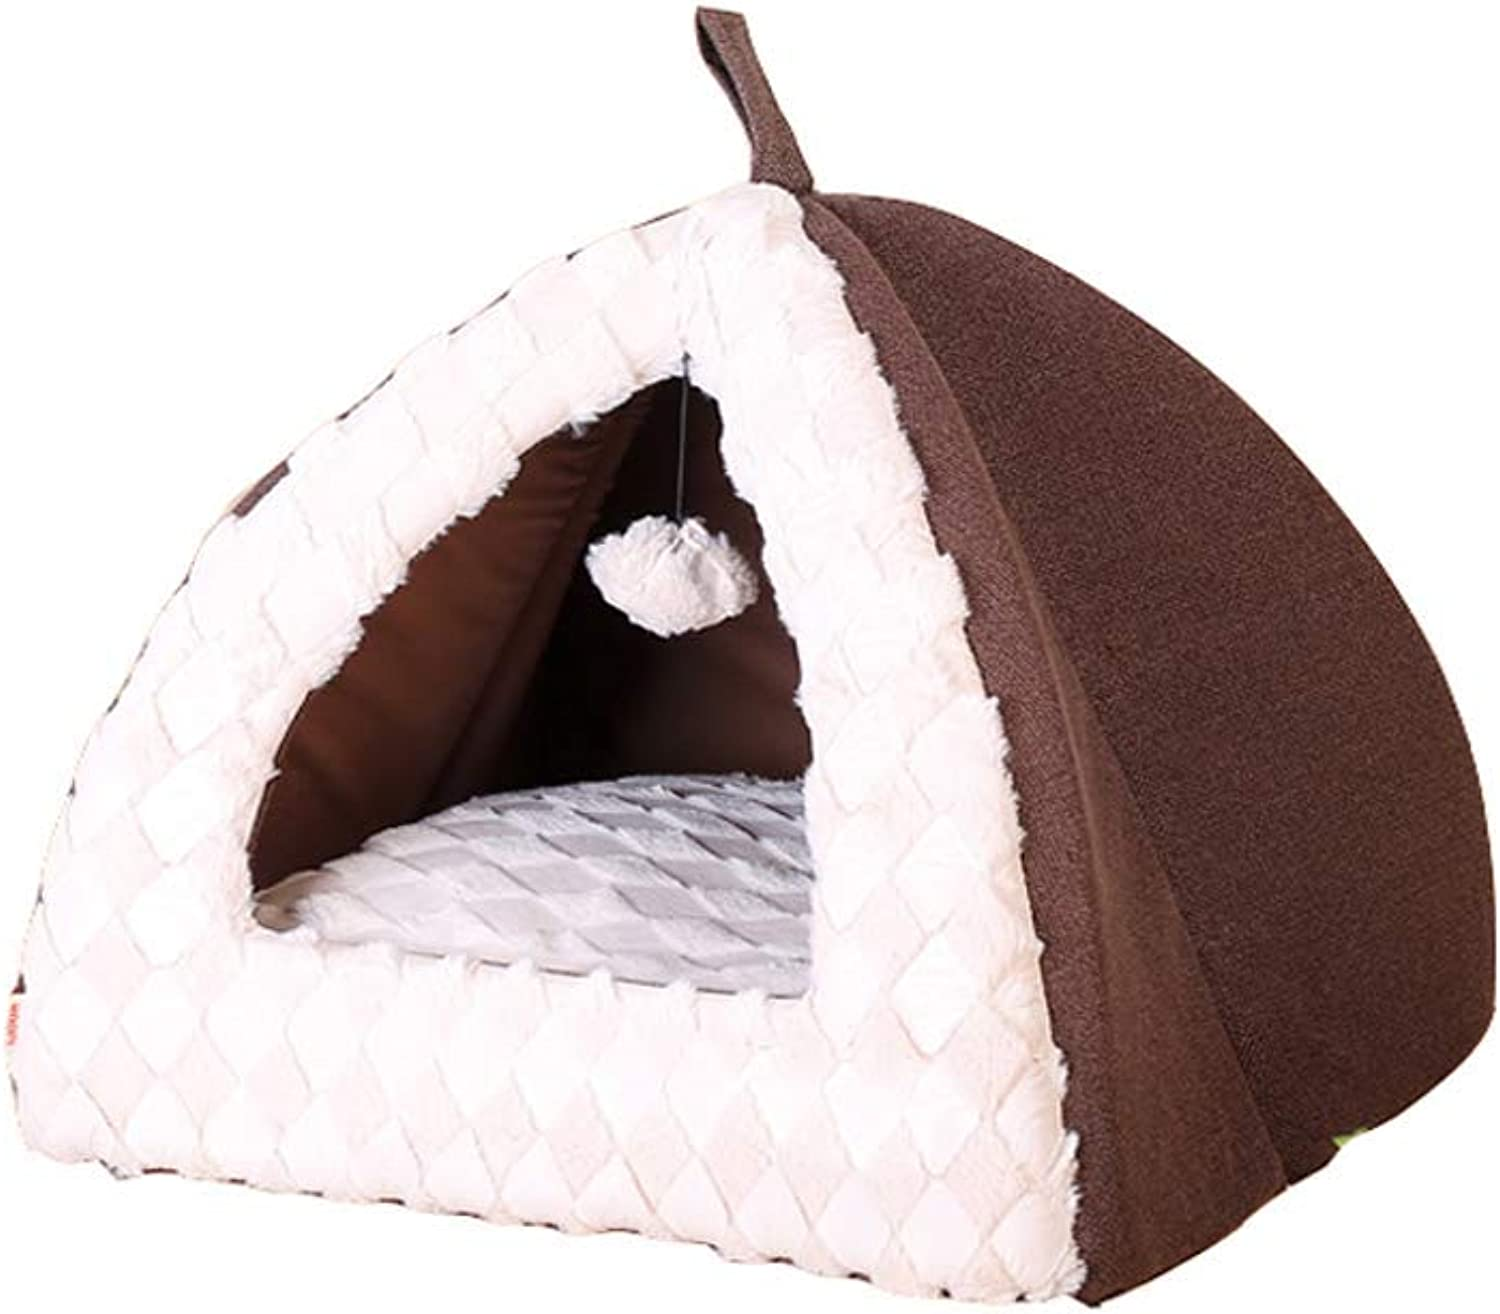 Kennel Cat Litter, Warm Closed Type Thick Nonslip Deep Sleep Yurt Winter Cat Bed Cat House Winter Cat Supplies Dog Bed (color   BROWN, Size   S)